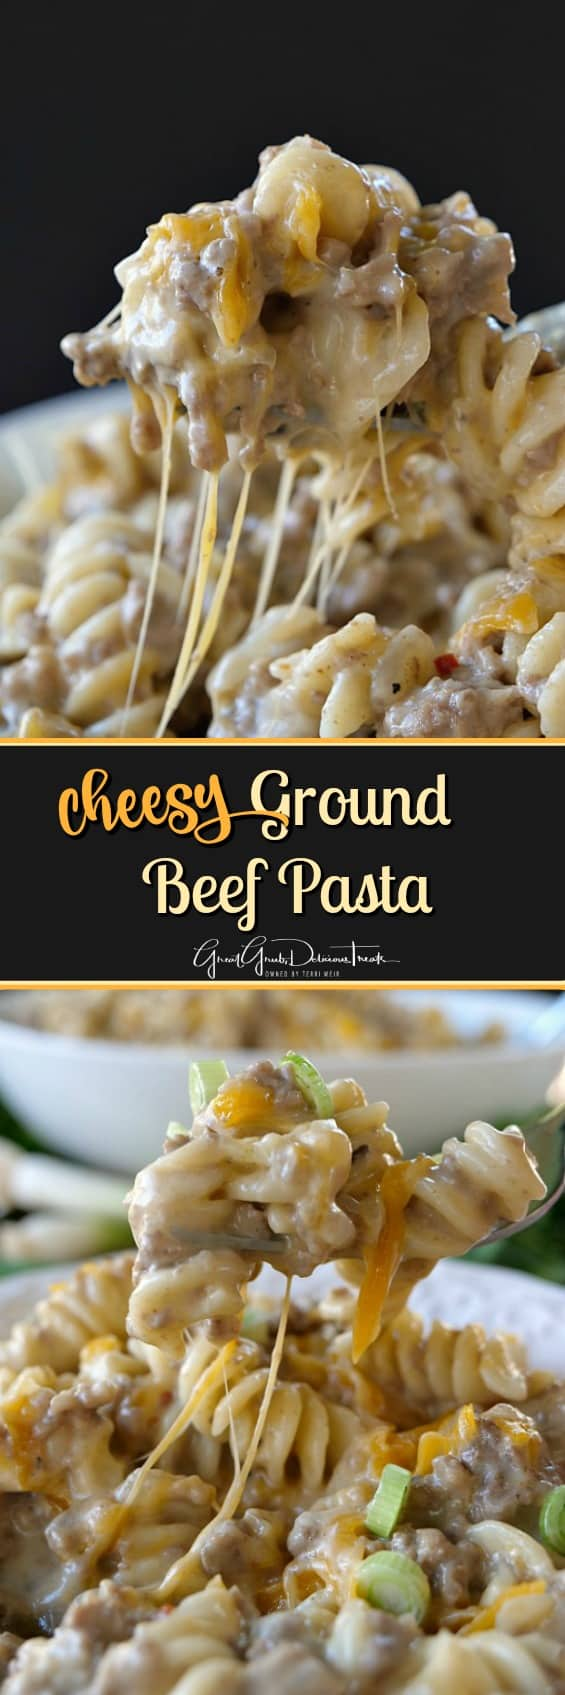 Cheesy Ground Beef Pasta